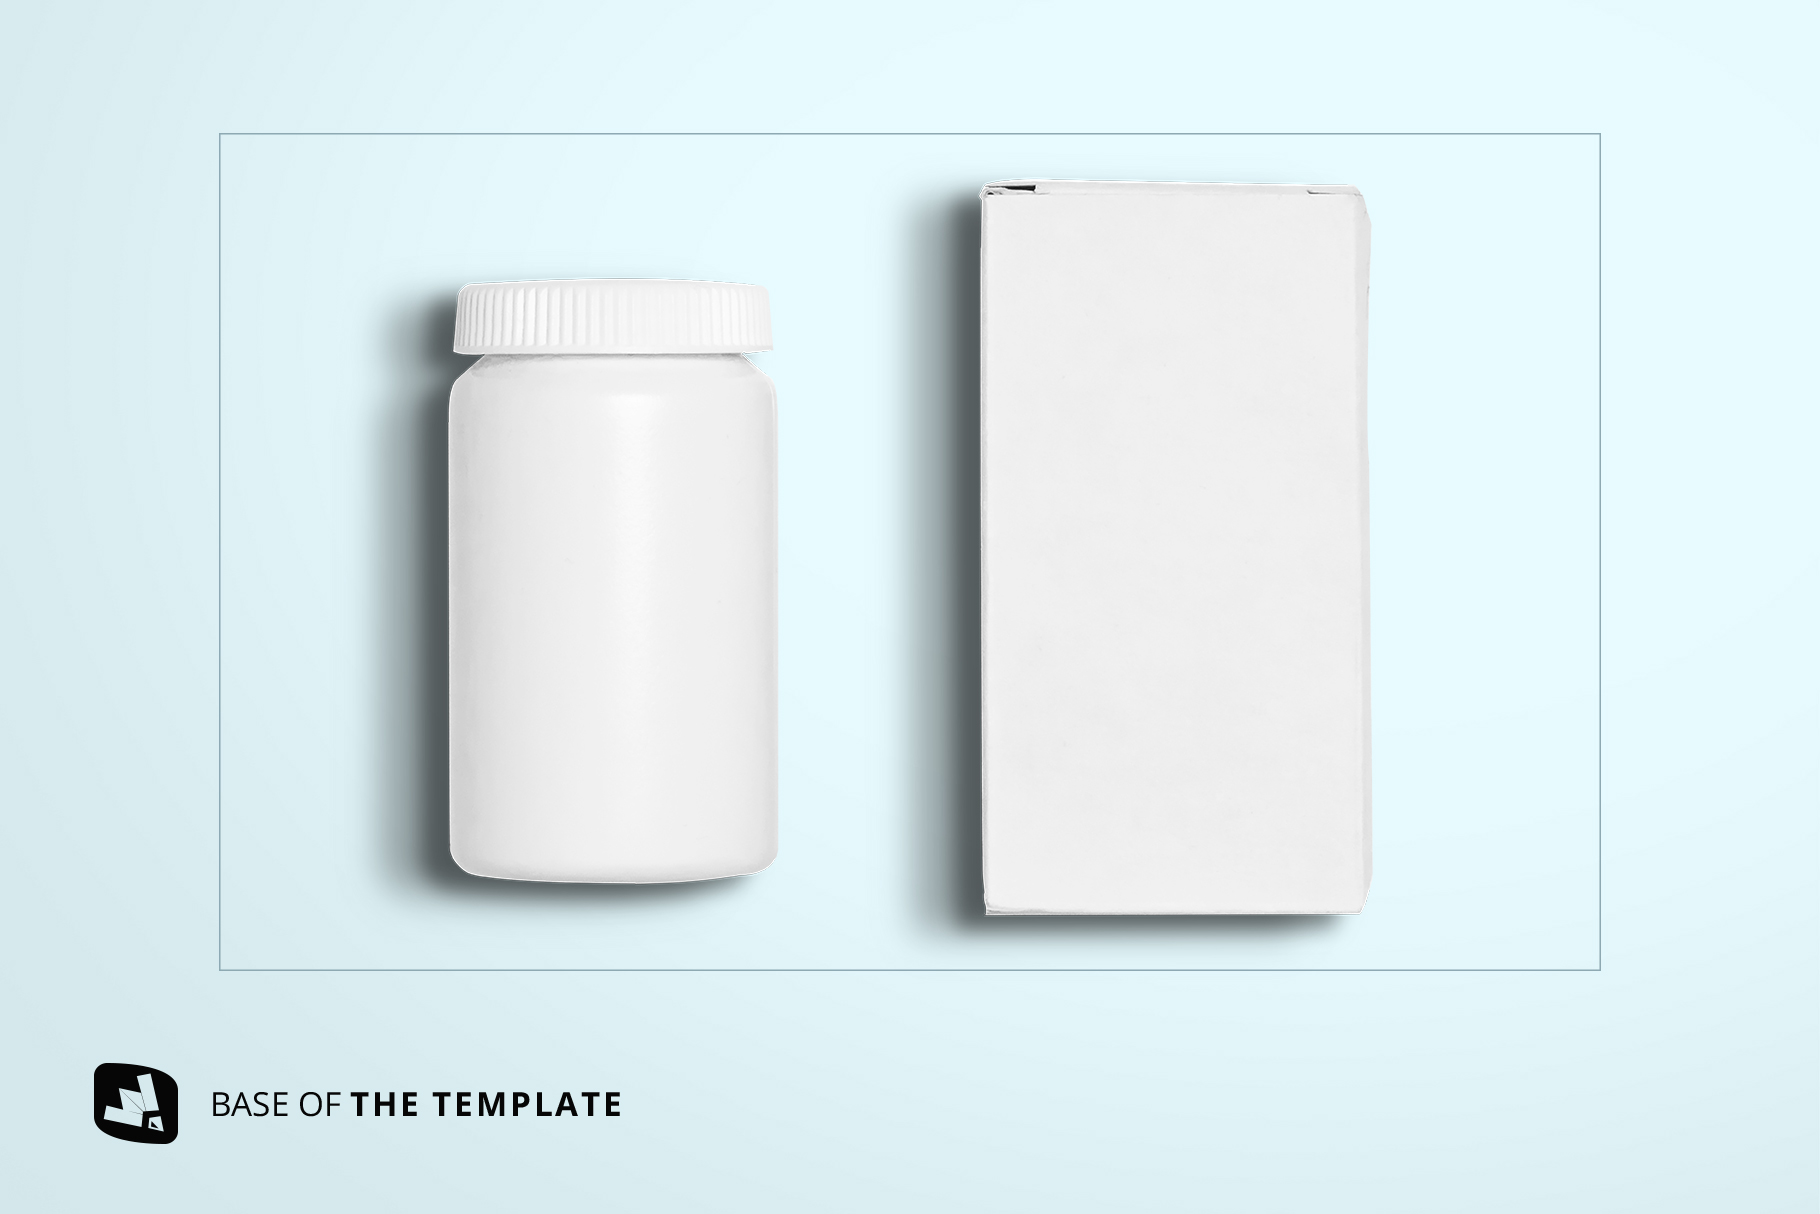 base image of the top view pill bottle packaging mockup